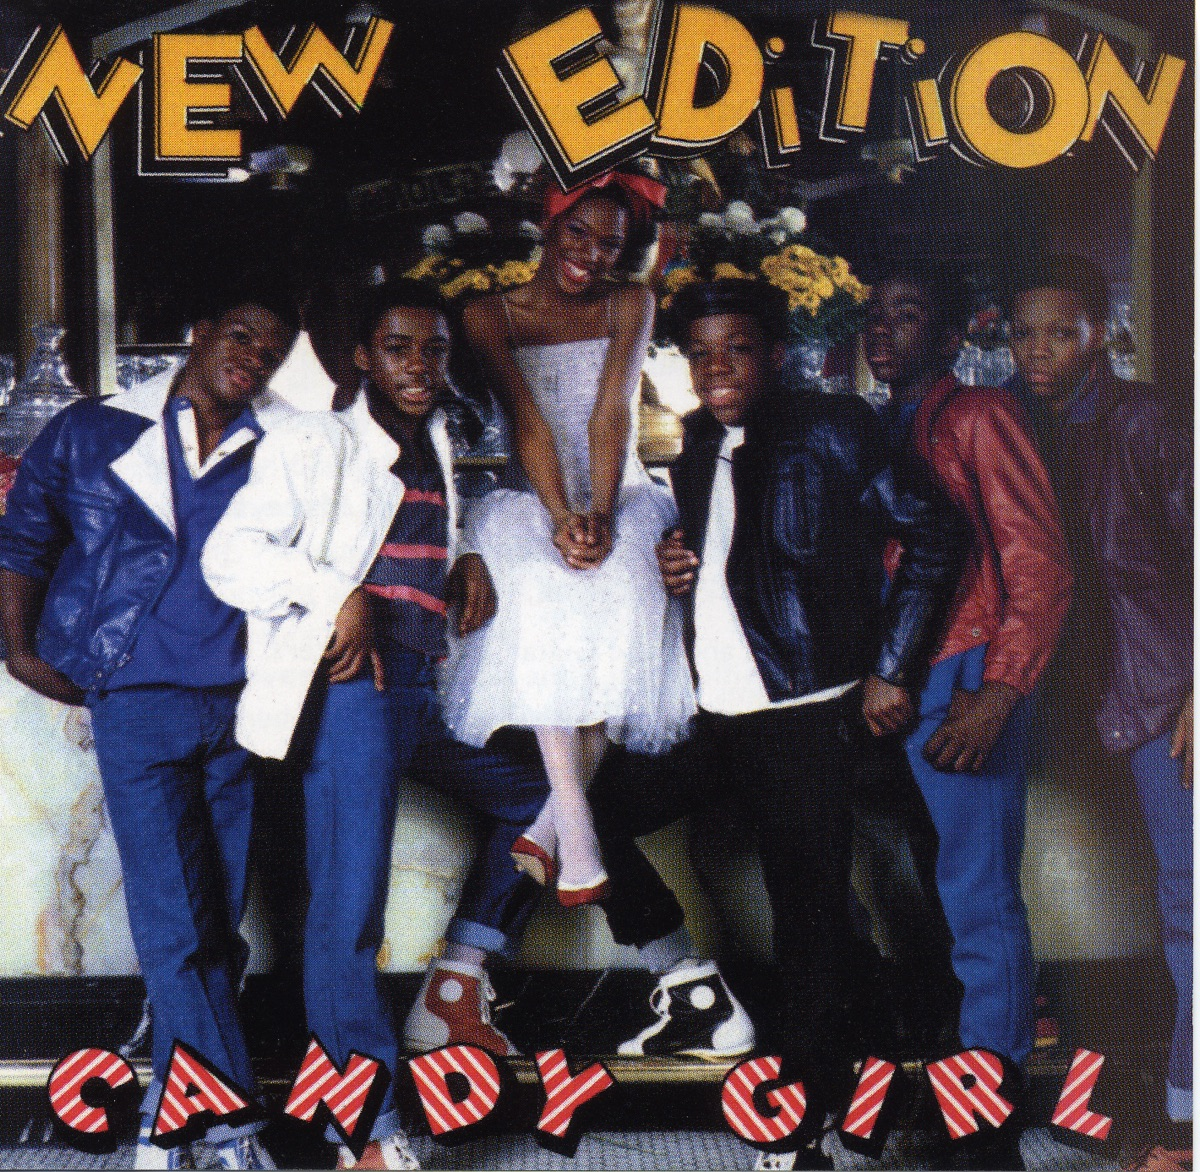 Candy Girl Album Cover By New Edition